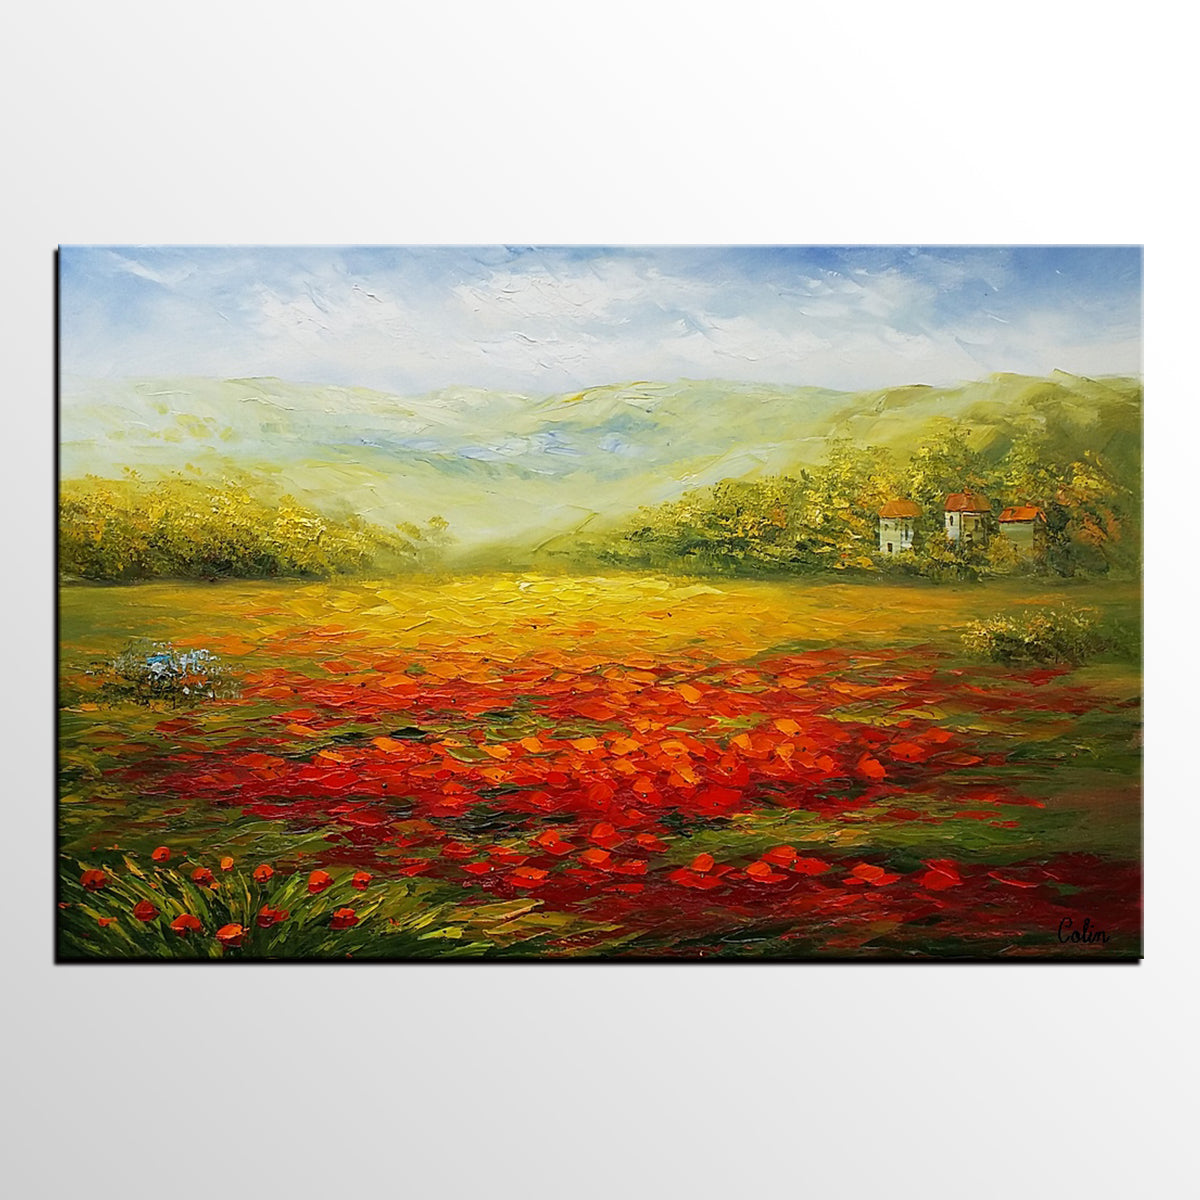 Poppy Field Painting, Landscape Painting, Large Art, Canvas Art, Wall Art, Original Painting, Canvas Painting, Oil Painting 291